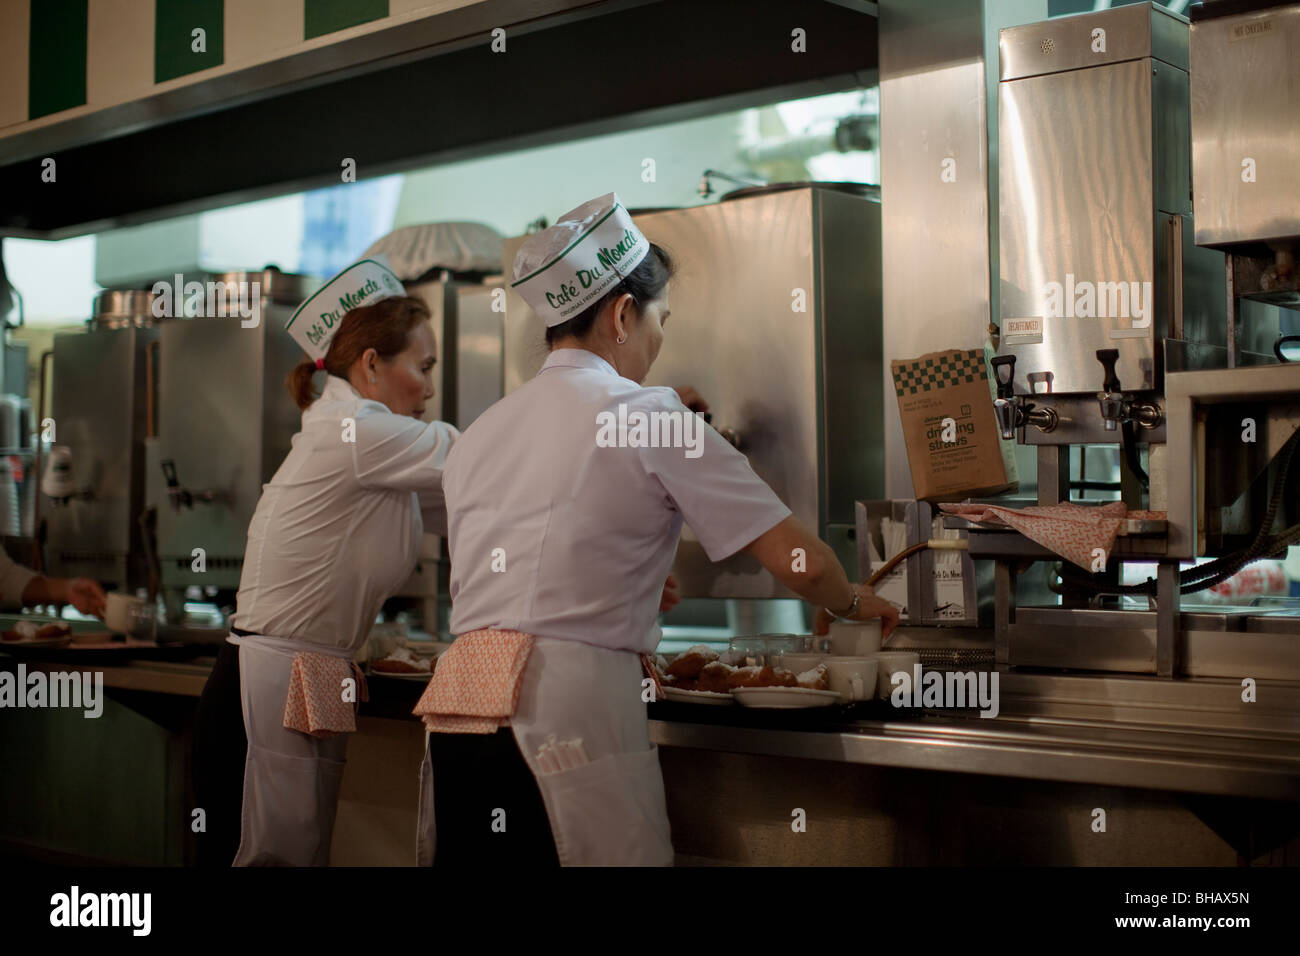 Waitresses at Cafe Du Monde serving up beignets and chicory coffee in the morning. - Stock Image